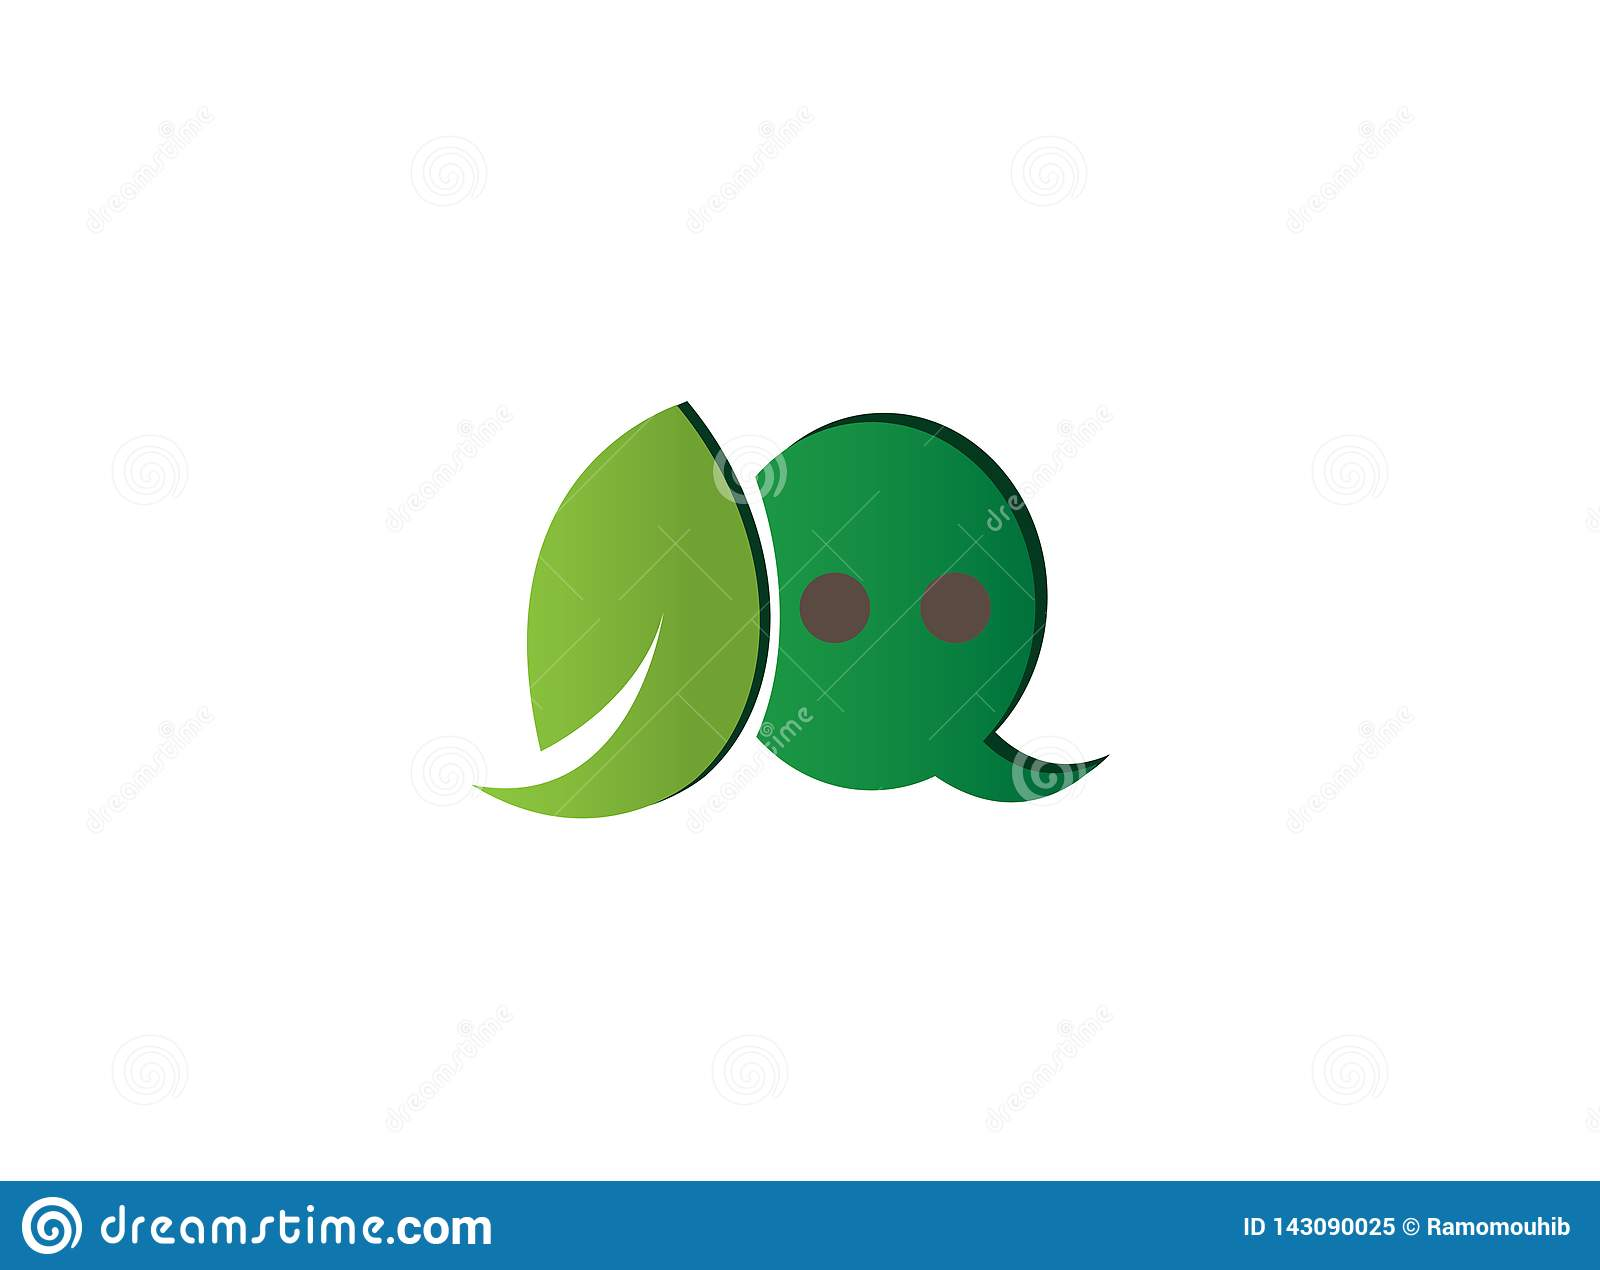 Leaf and chat icon in an ecological dialog for logo design